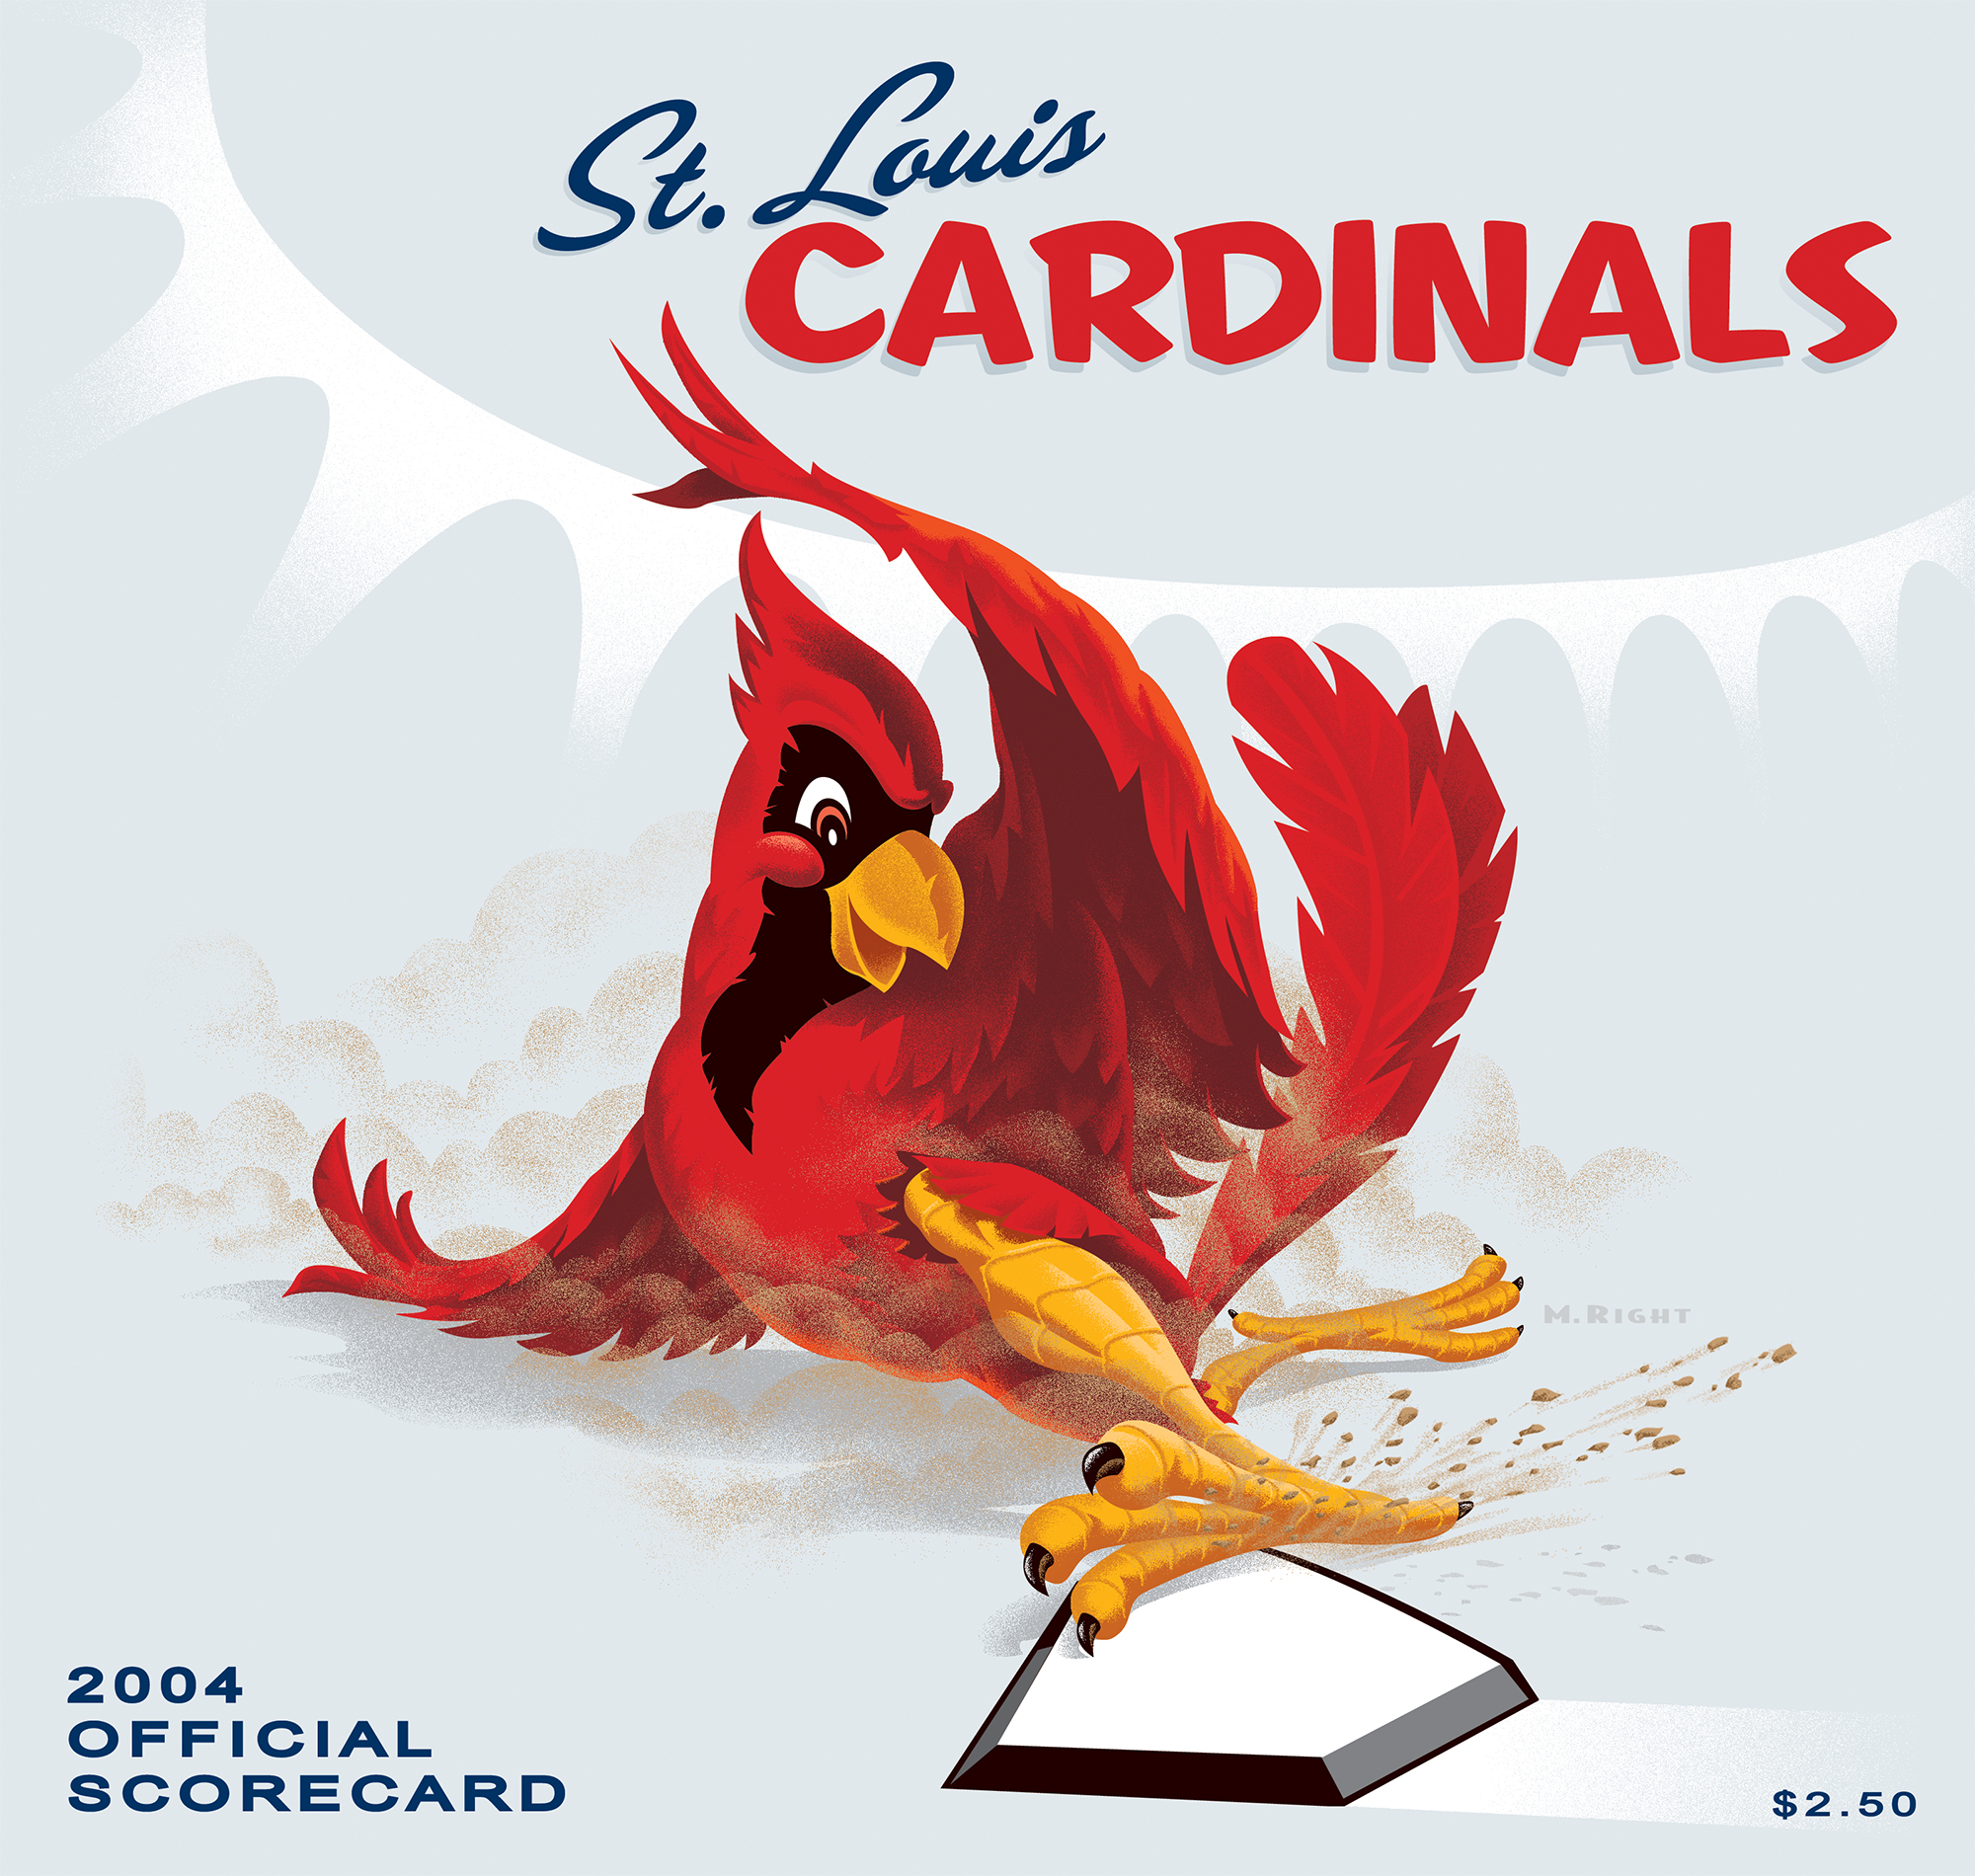 2004 Cardinals Official Scorecard